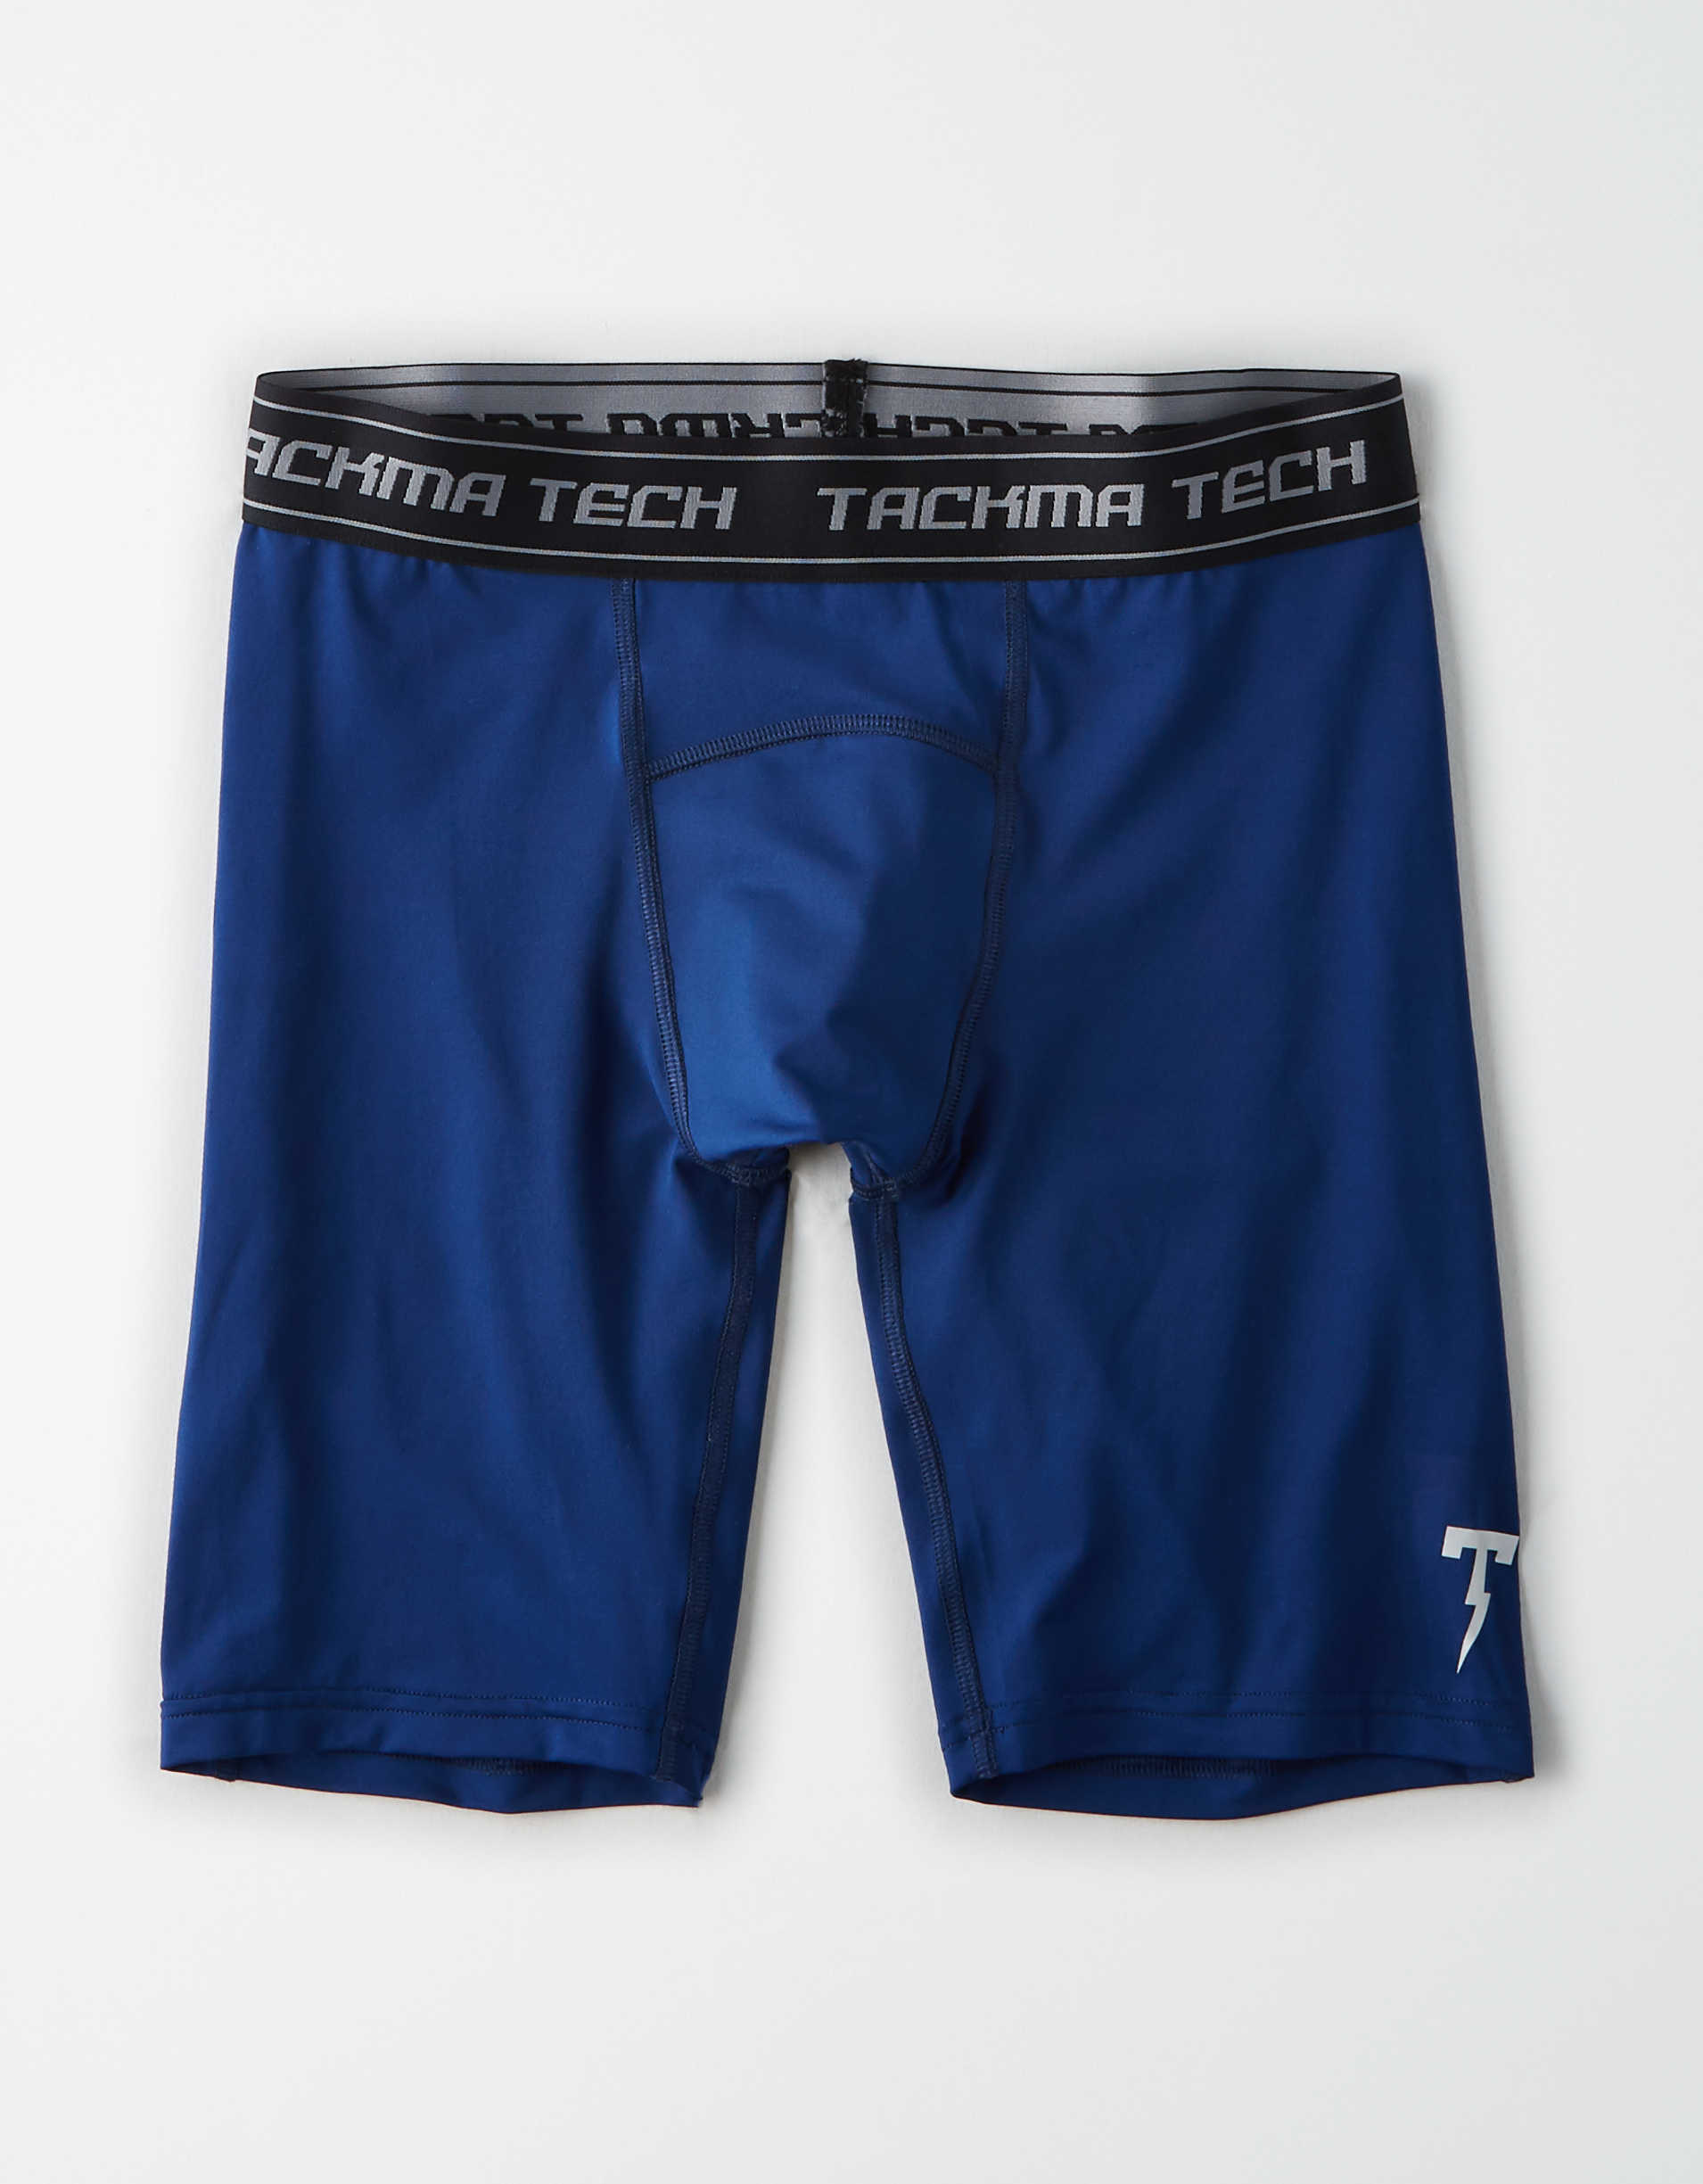 TACKMA Tech Compression Short